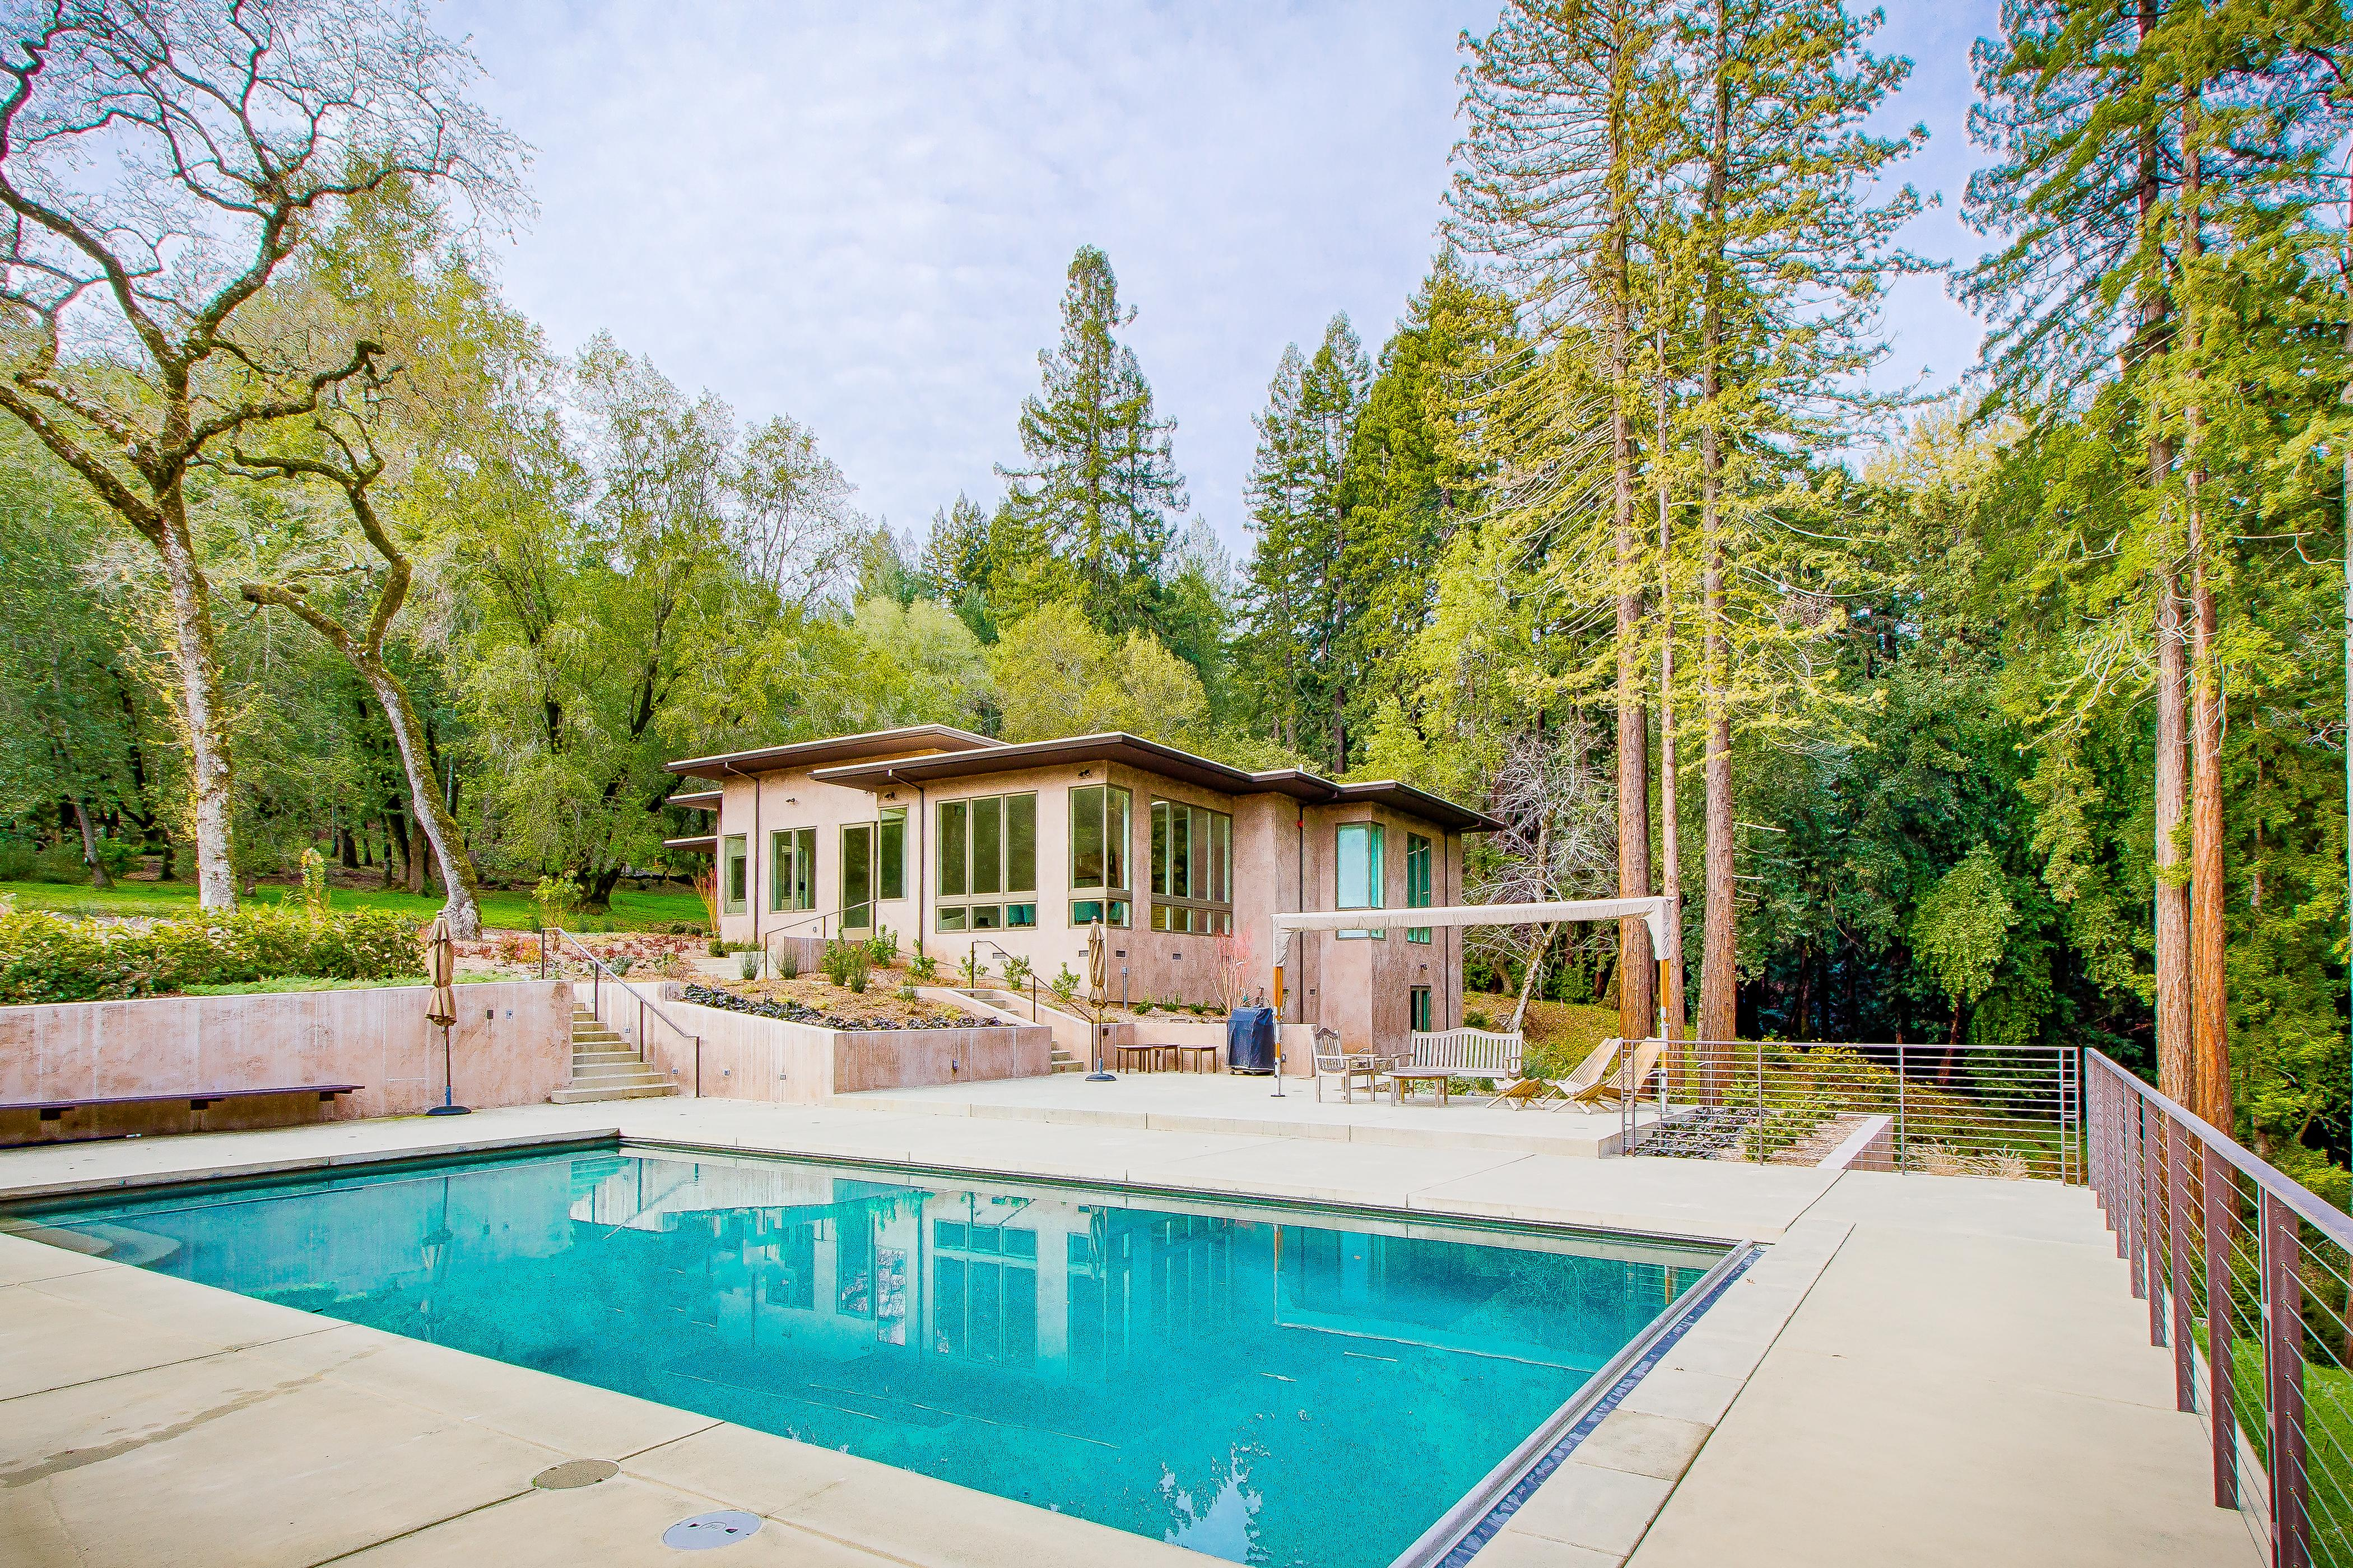 Welcome to Sonoma! This modern home is professionally managed by TurnKey Vacation Rentals.